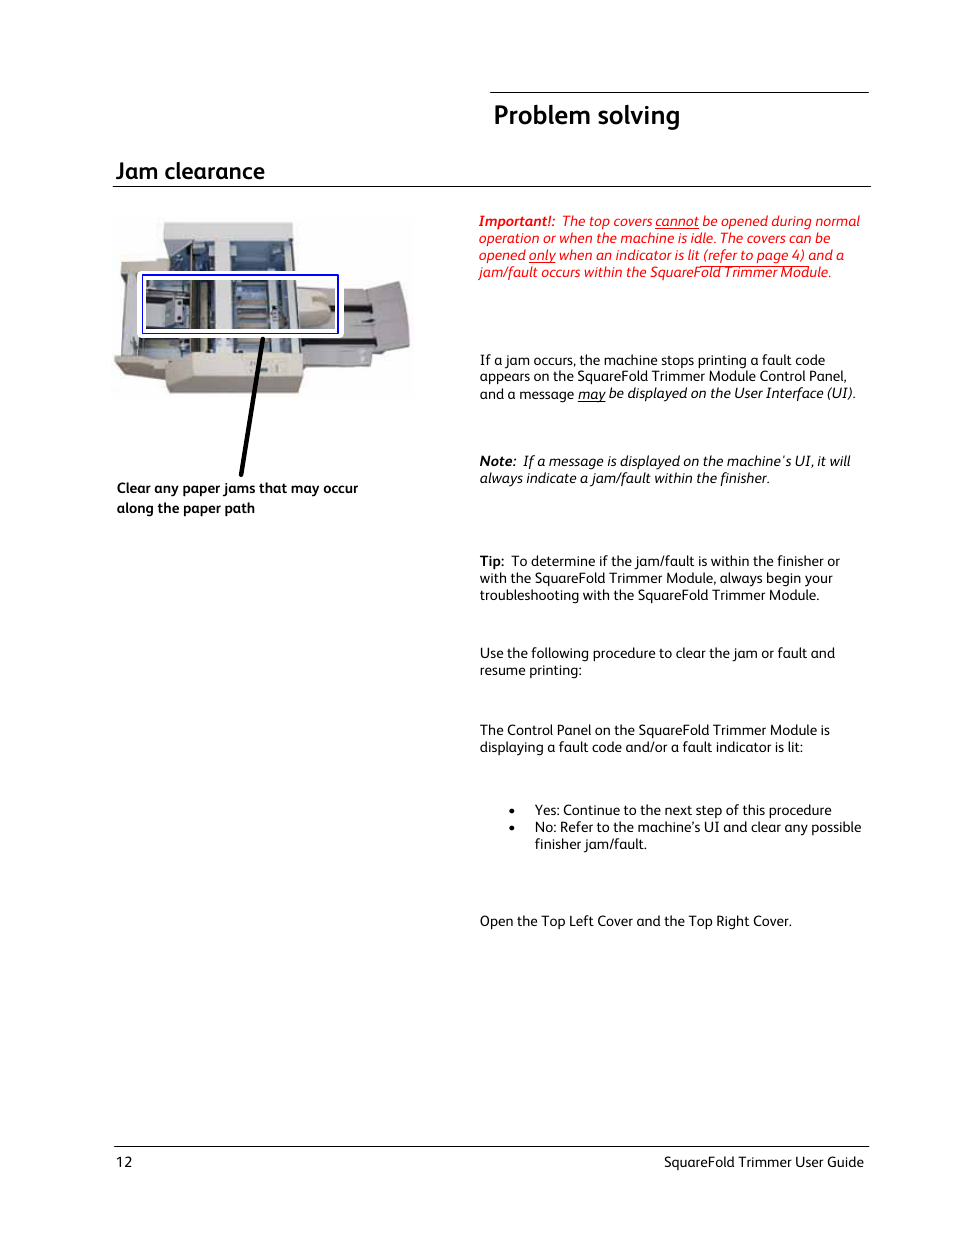 Problem solving, Jam clearance | Xerox Trimmer Module